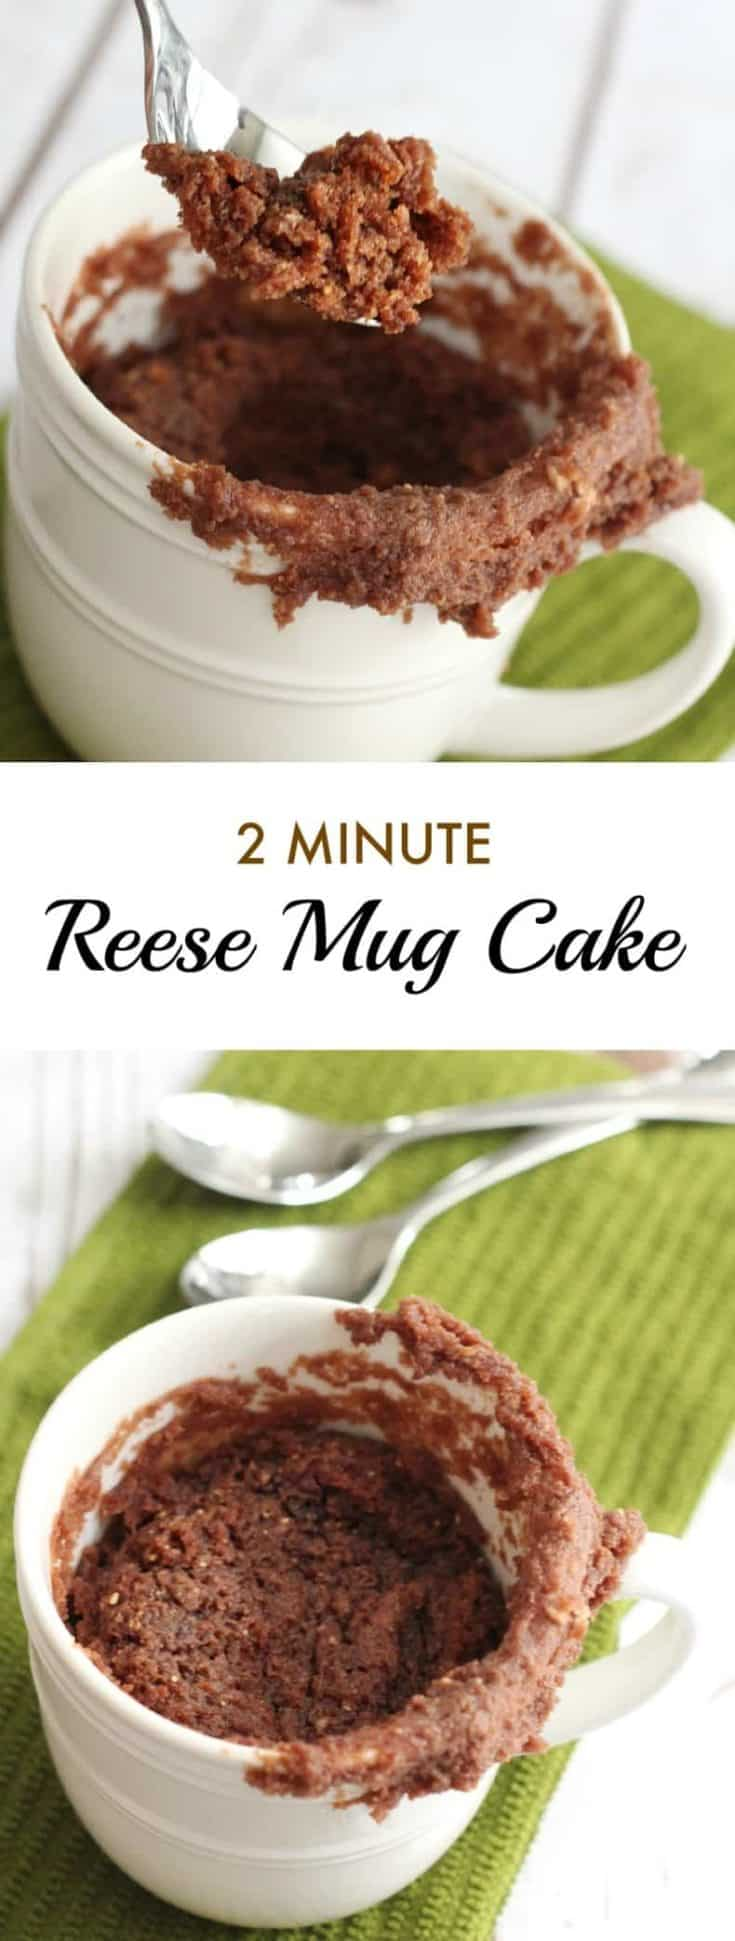 Reese Mug Cake recipe is made with Reese Spread, a perfect quick and easy minute mug cake dessert with an epic chocolate and peanut butter flavour. #mugcake #cakerecipe #easycake